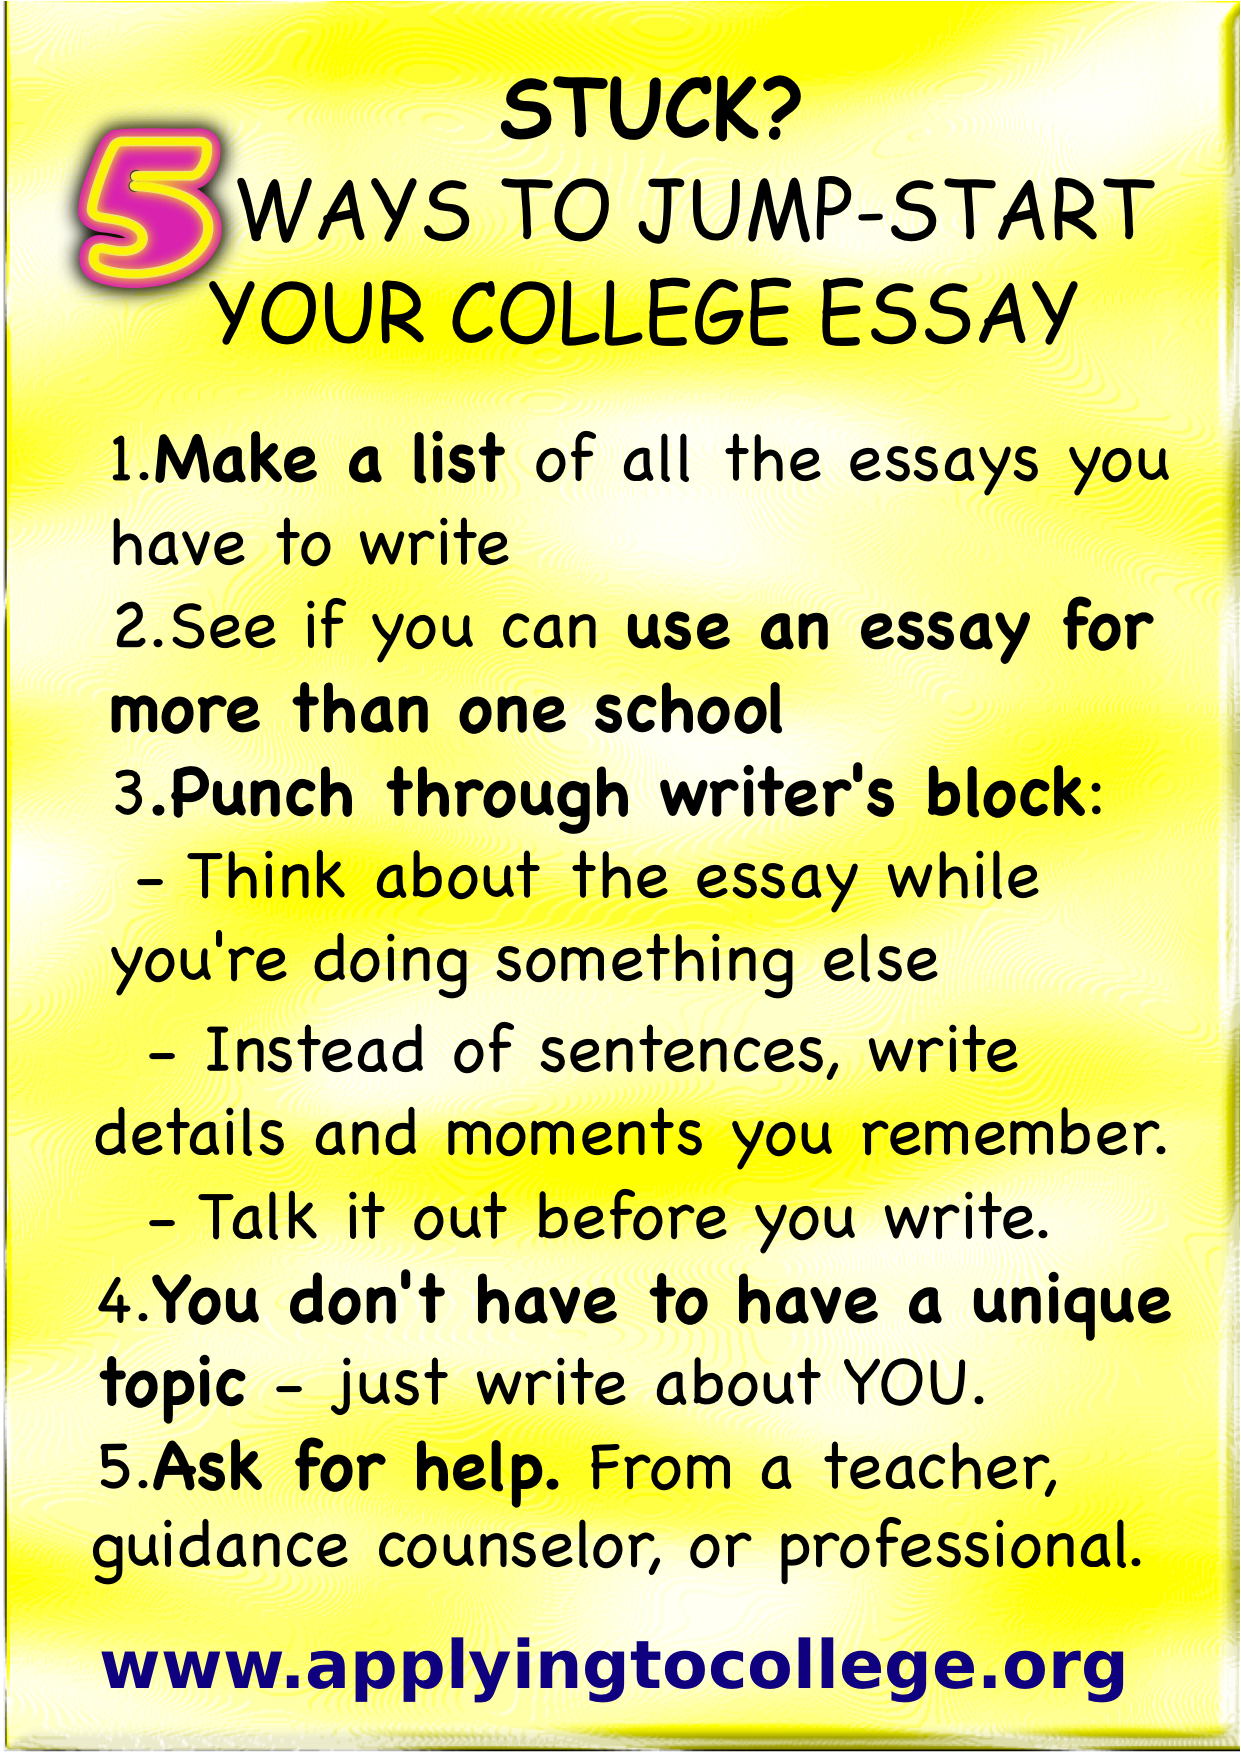 stuck 5 tips to jump start your college essay applying to college 5 ways to reduce essay how to write my - What Do I Write My College Essay About